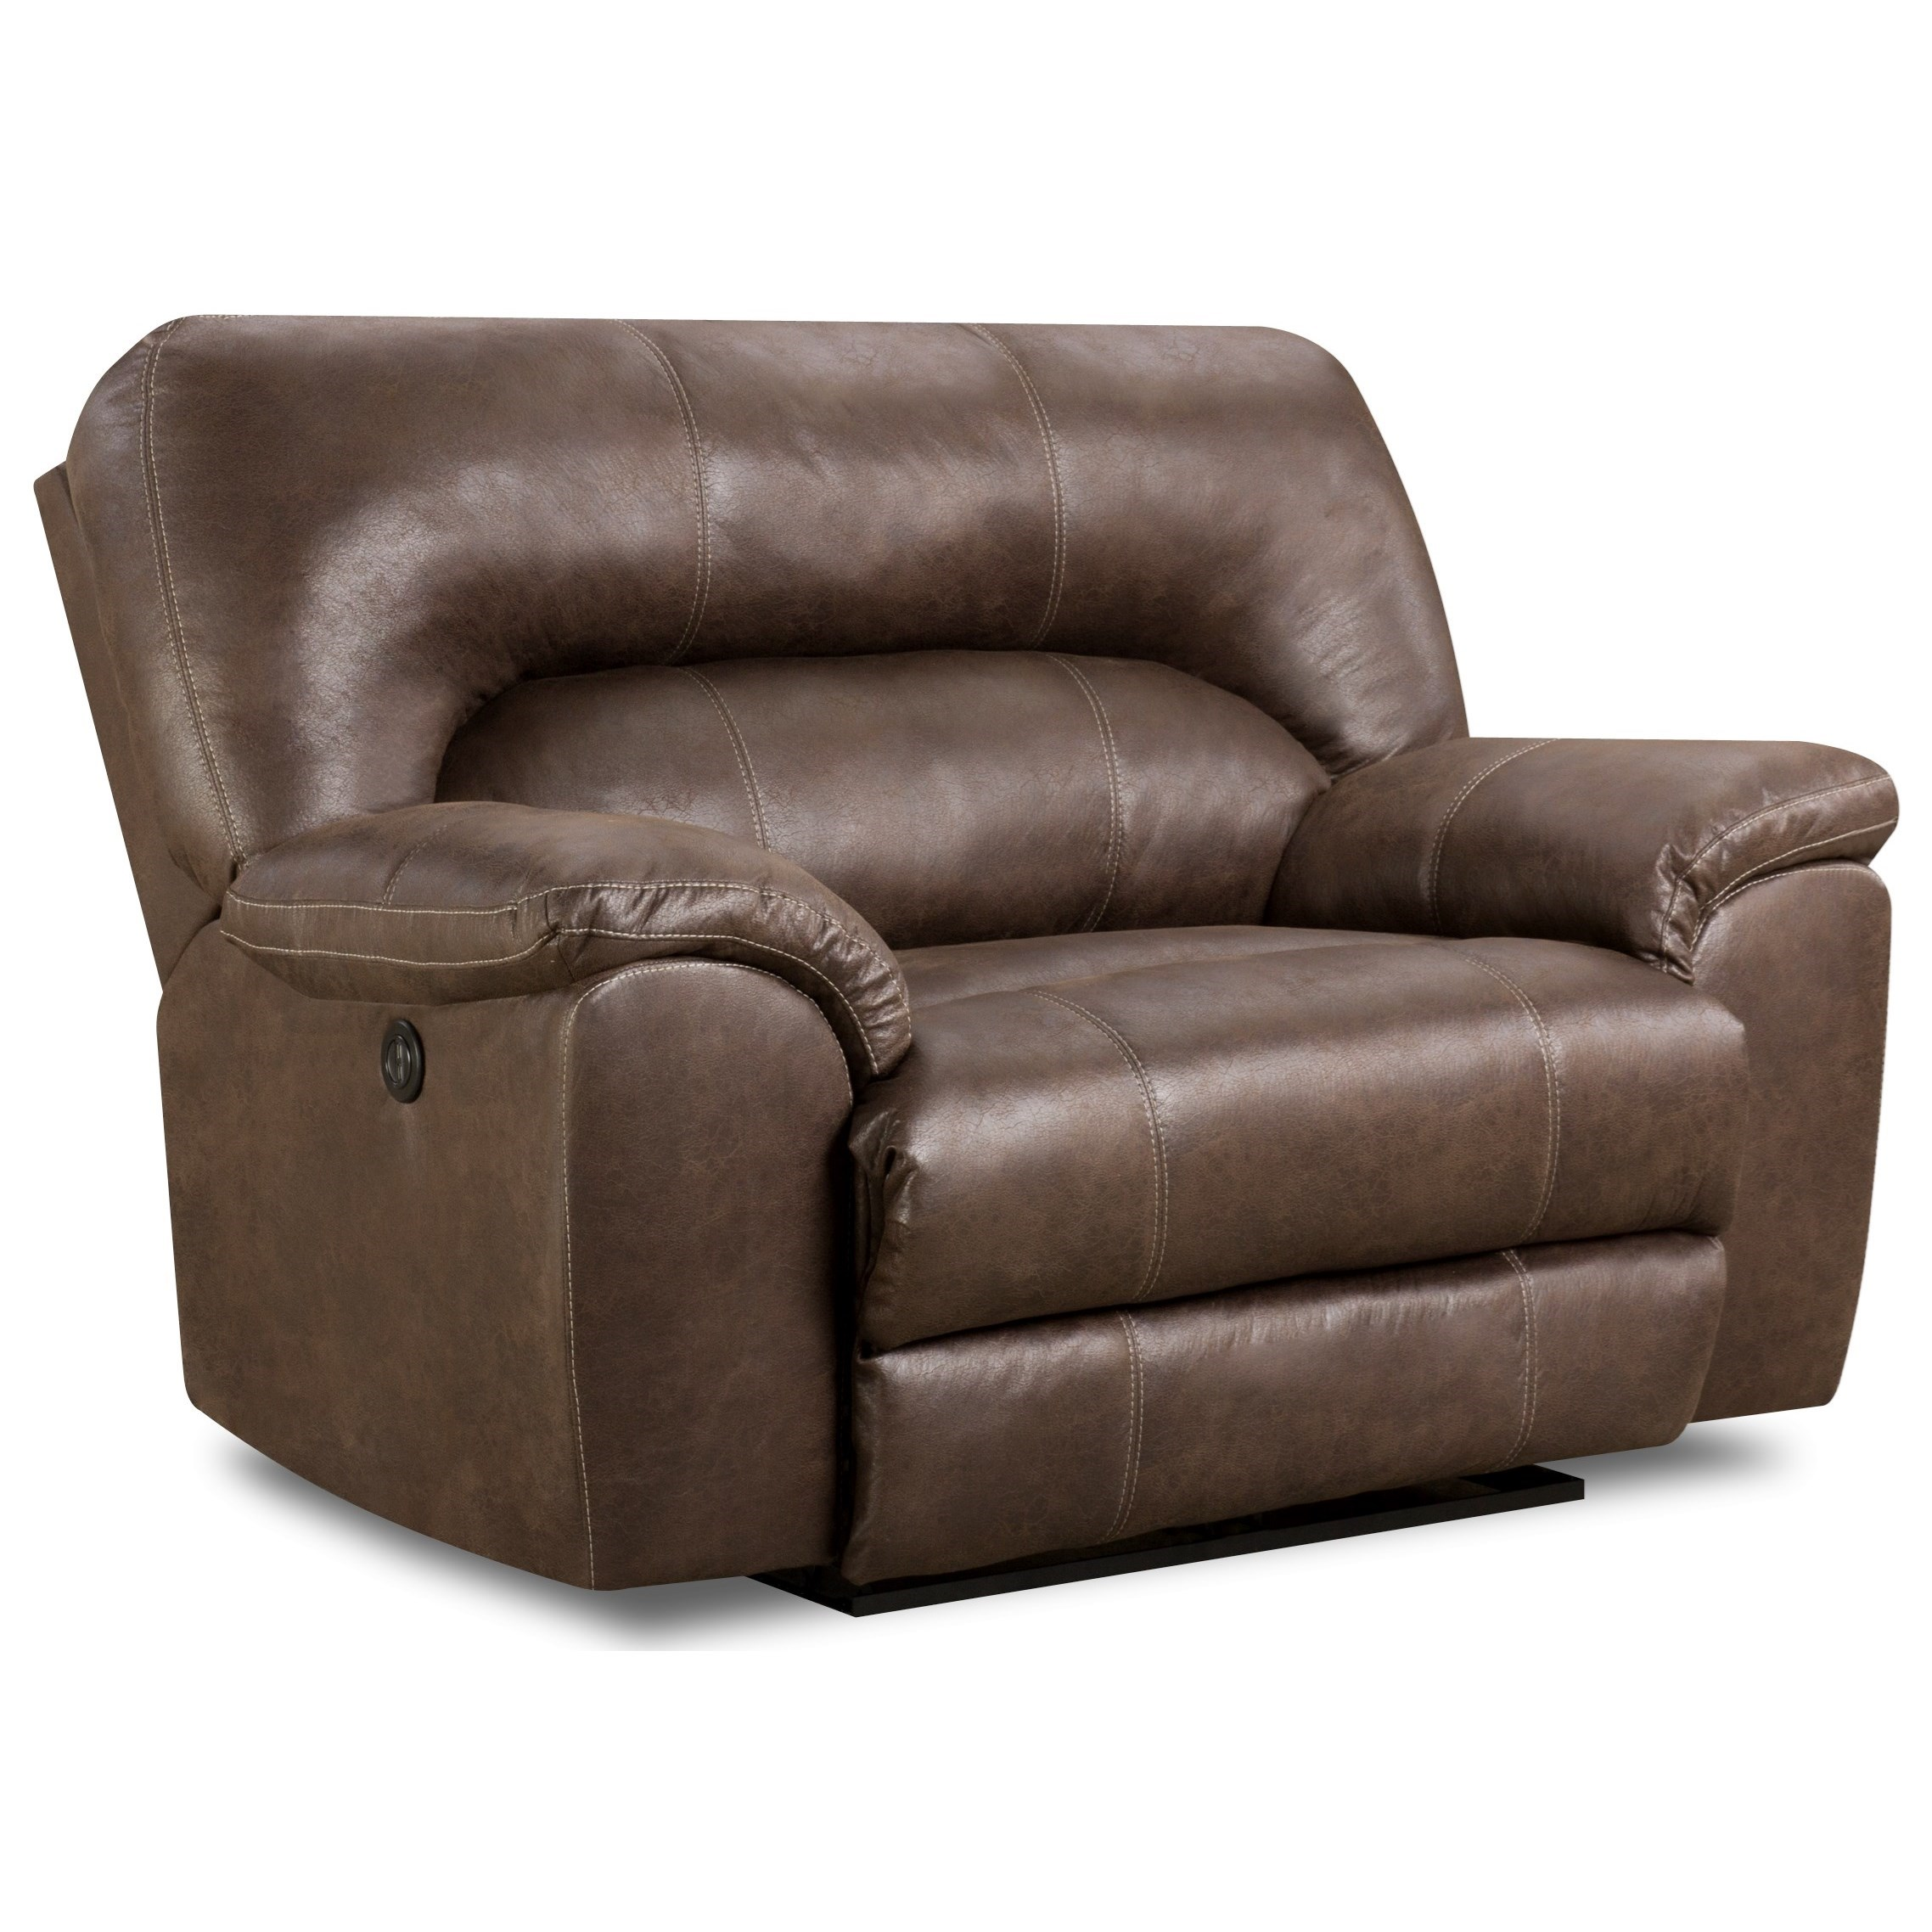 7409 Recliner by Peak Living at Prime Brothers Furniture